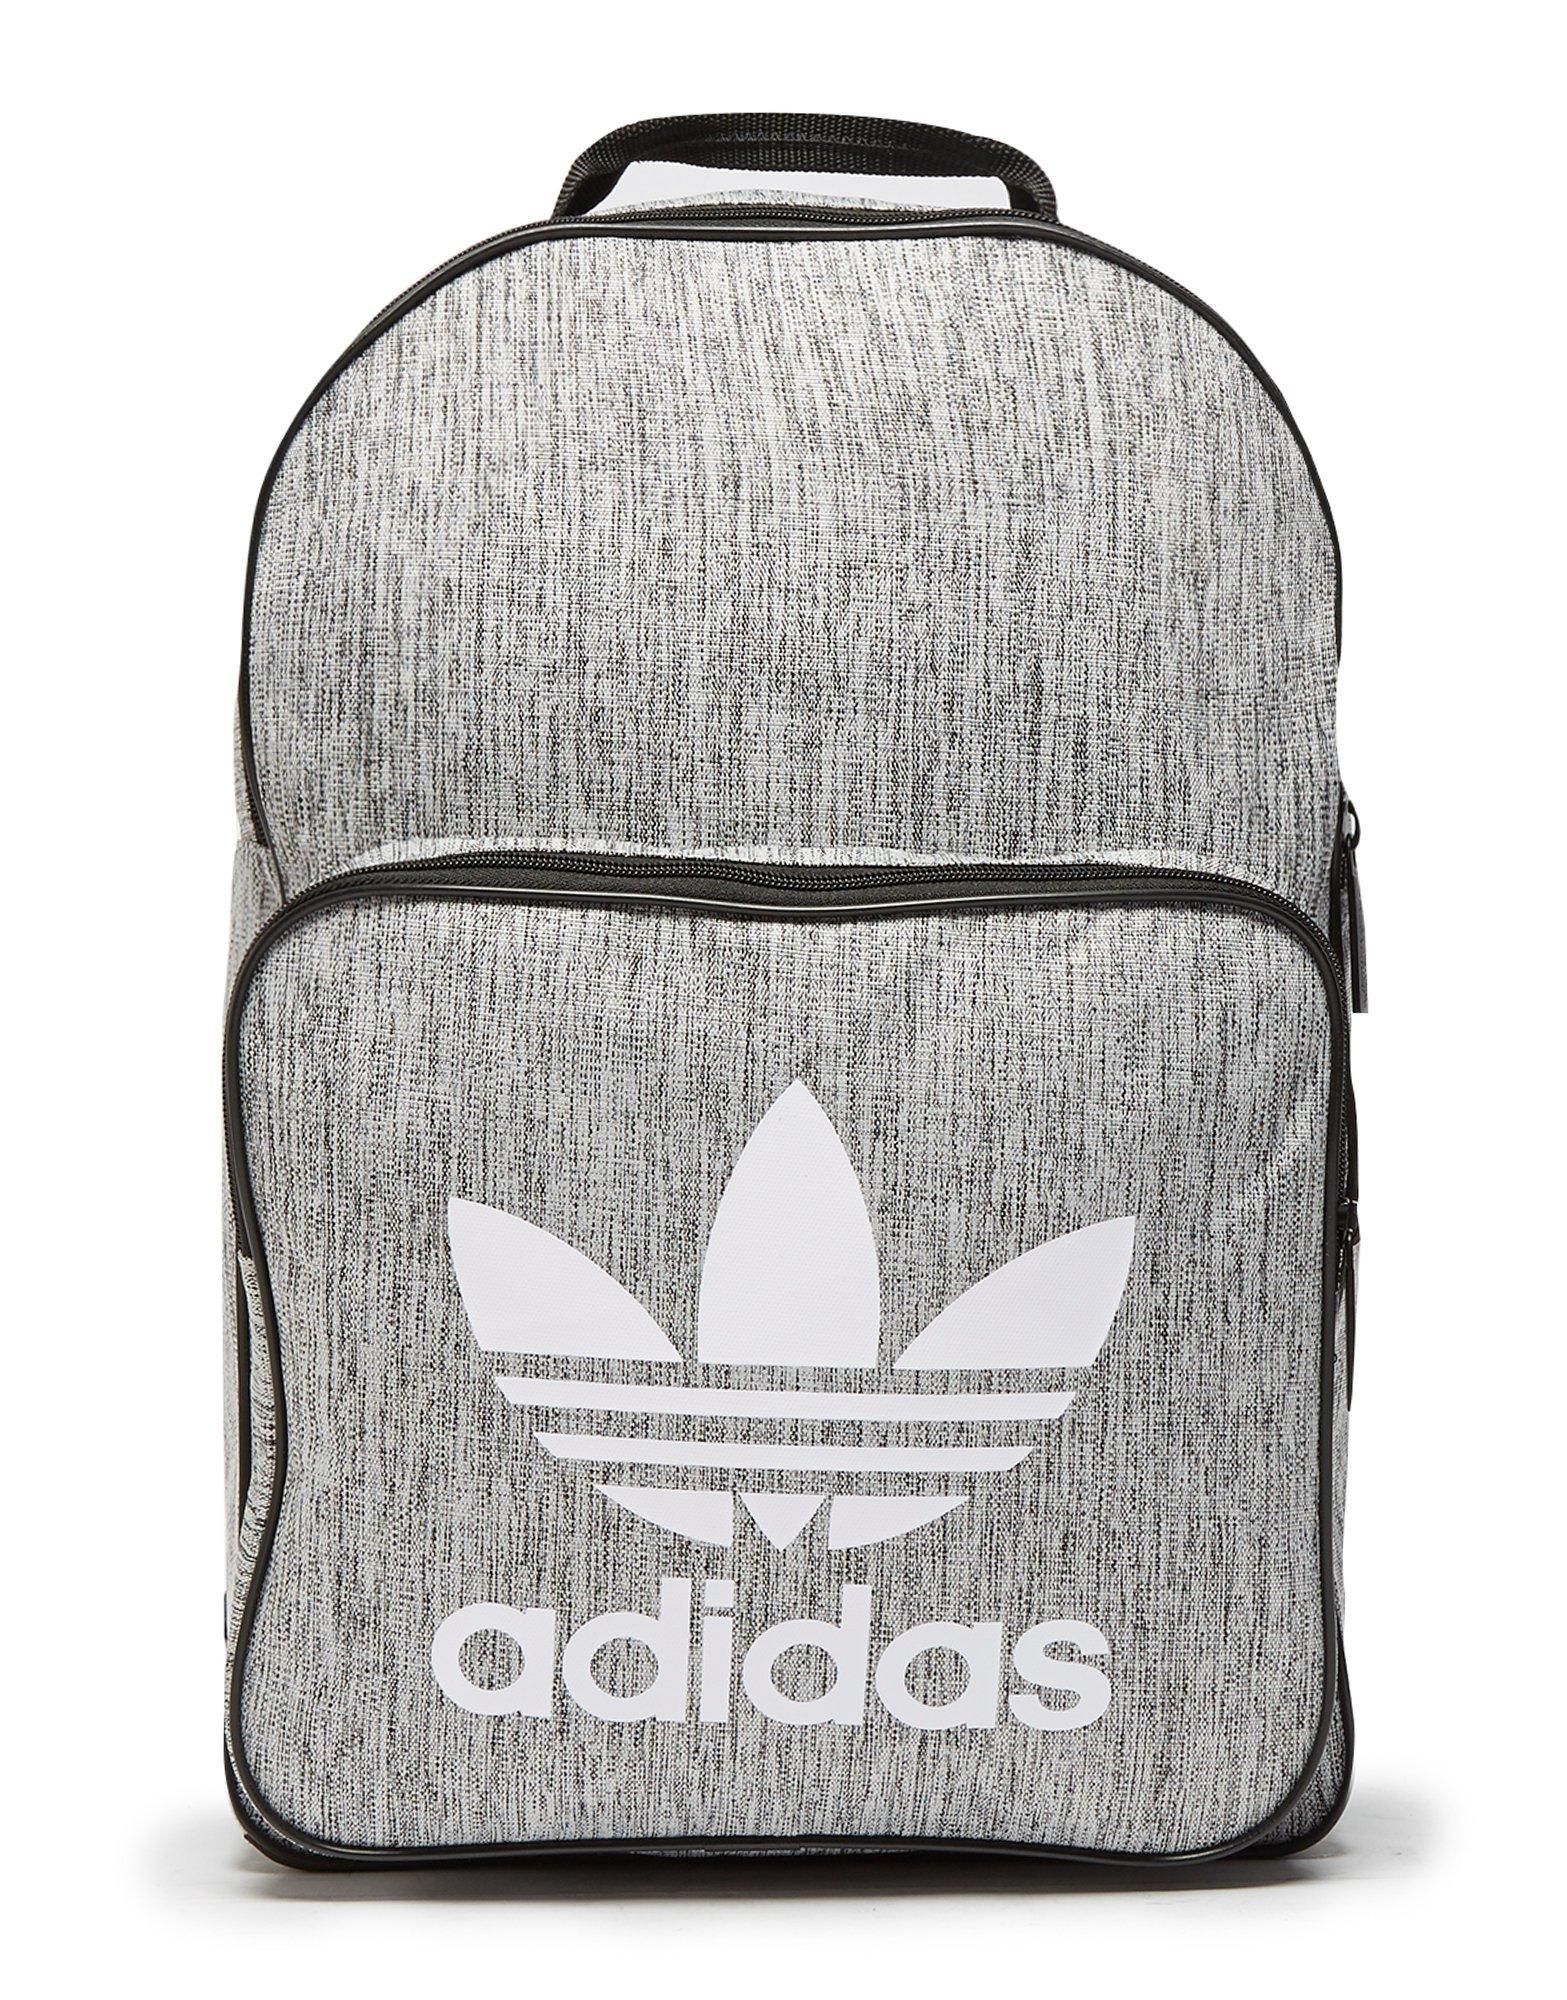 b5a5ca7cb9e7 Lyst - adidas Originals Classic Melange Backpack in Gray for Men